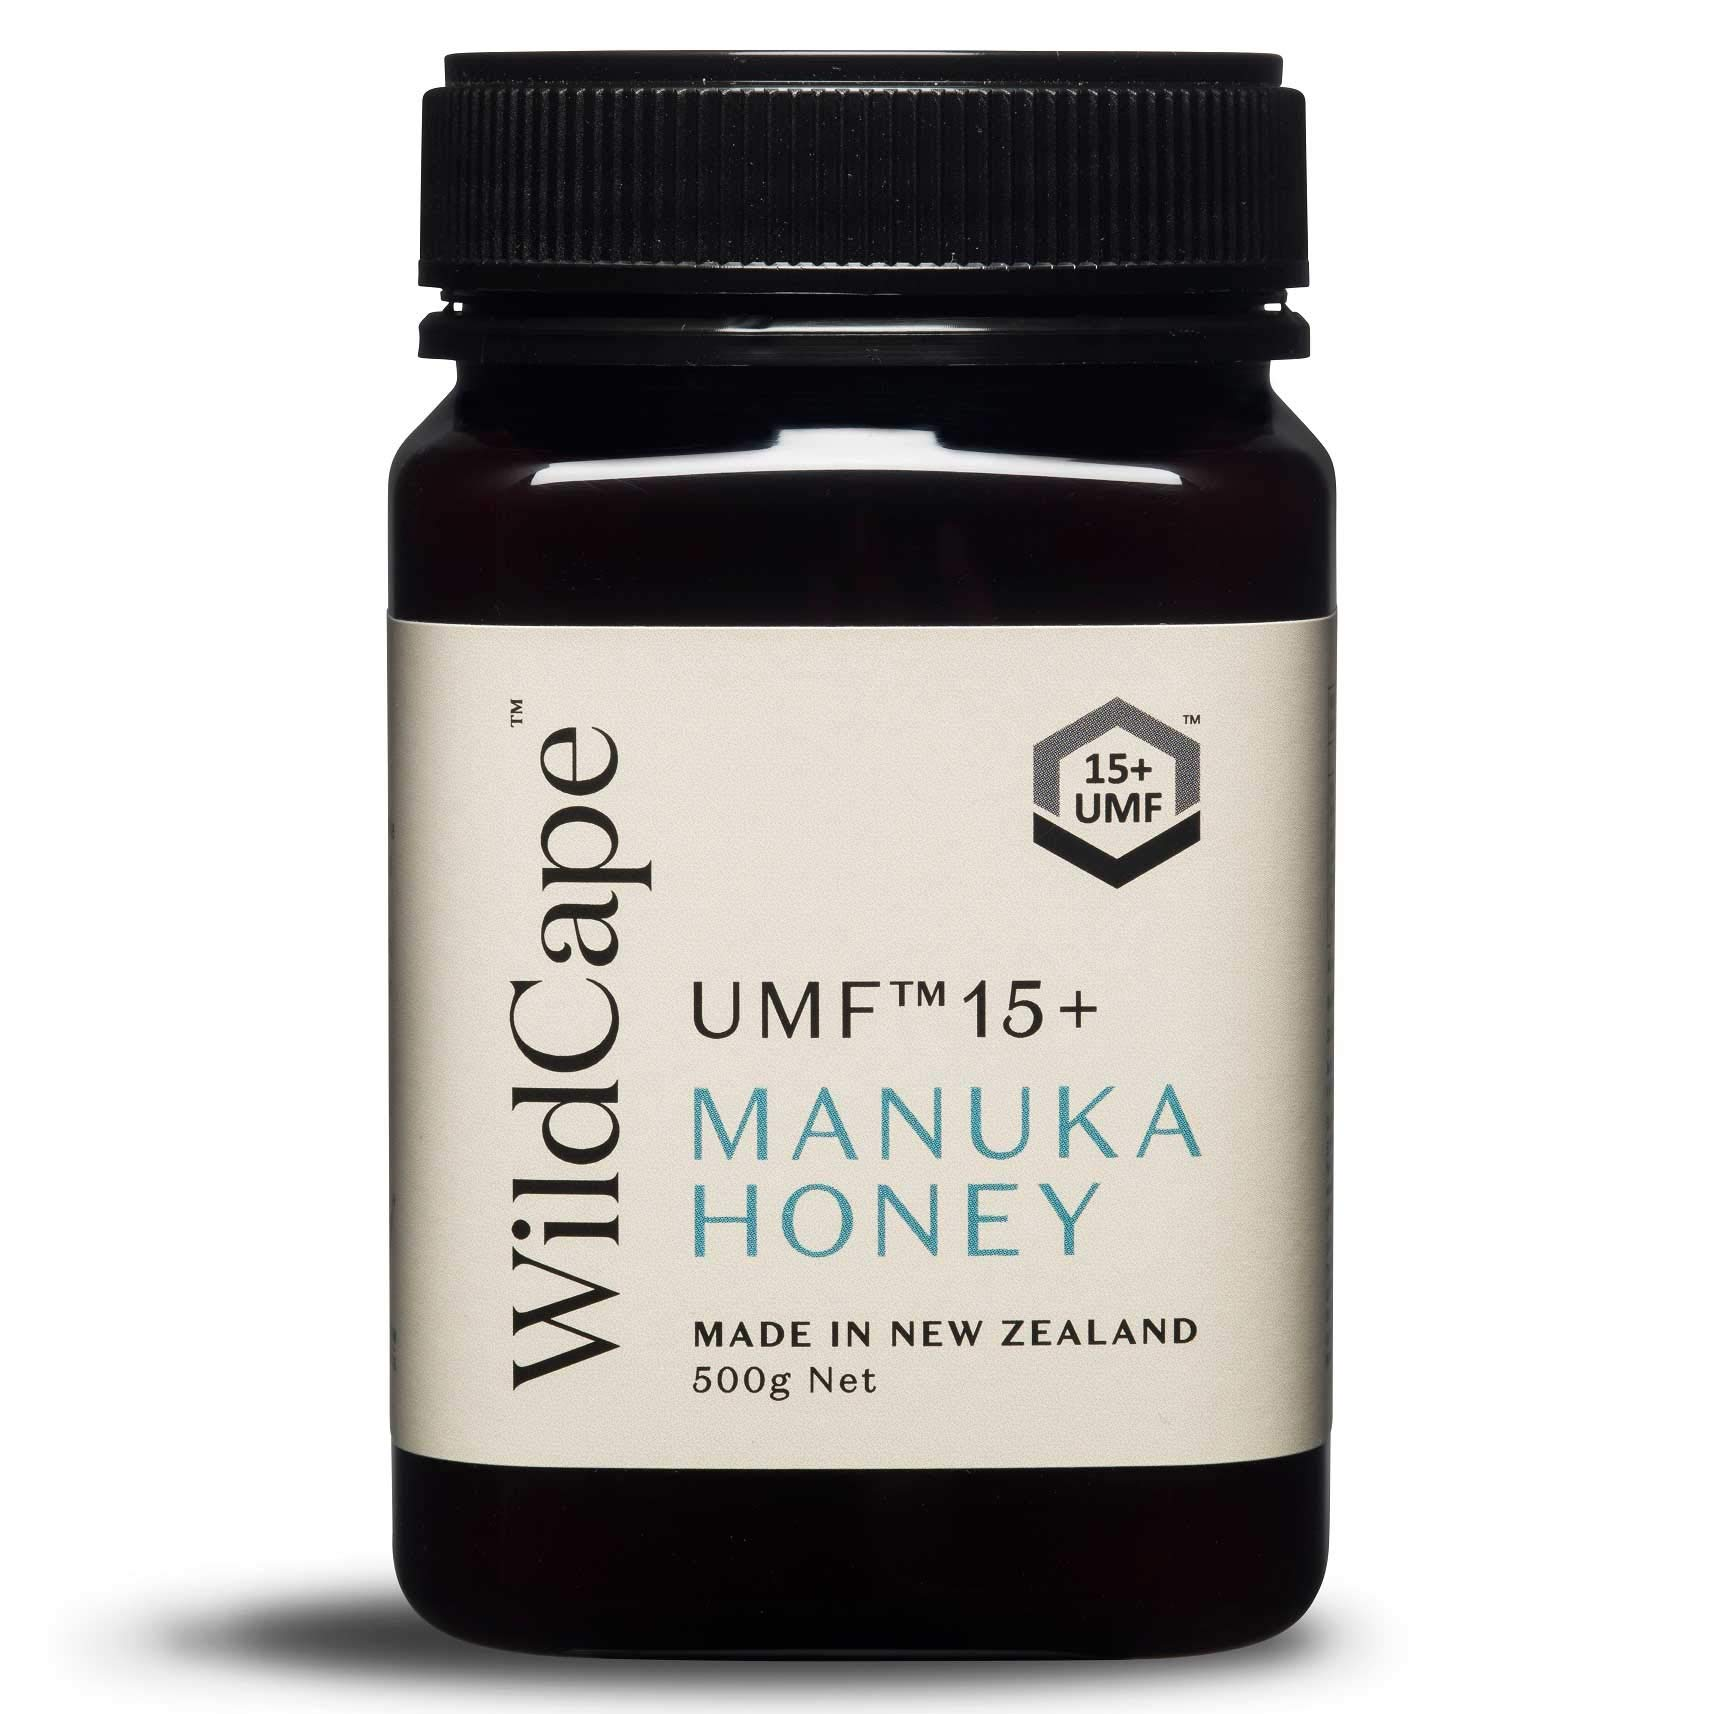 WildCape UMF 15+ East Cape Manuka Honey, 500g (1.1 lb)